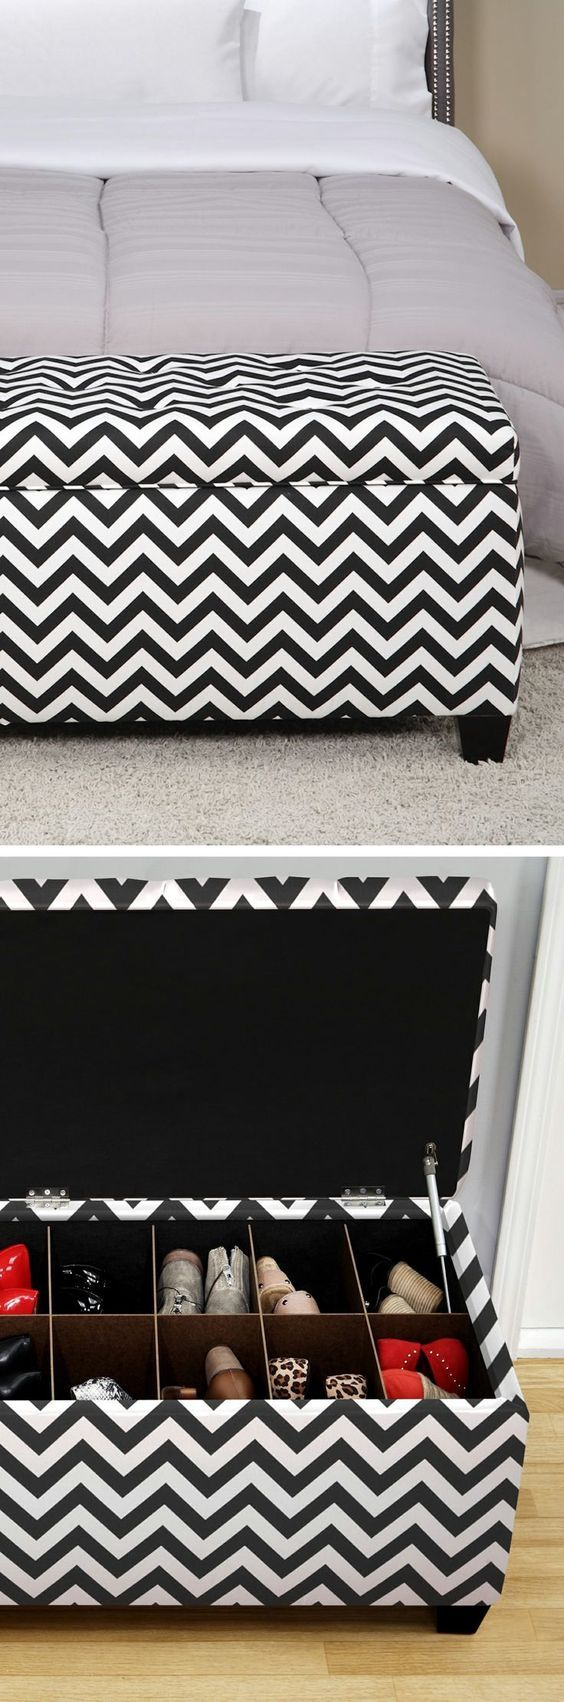 Chevron shoe storage ottoman bench // Need this! So perfect for bedroom or  hall - 25+ Best Ideas About White Storage Ottoman On Pinterest Ikea